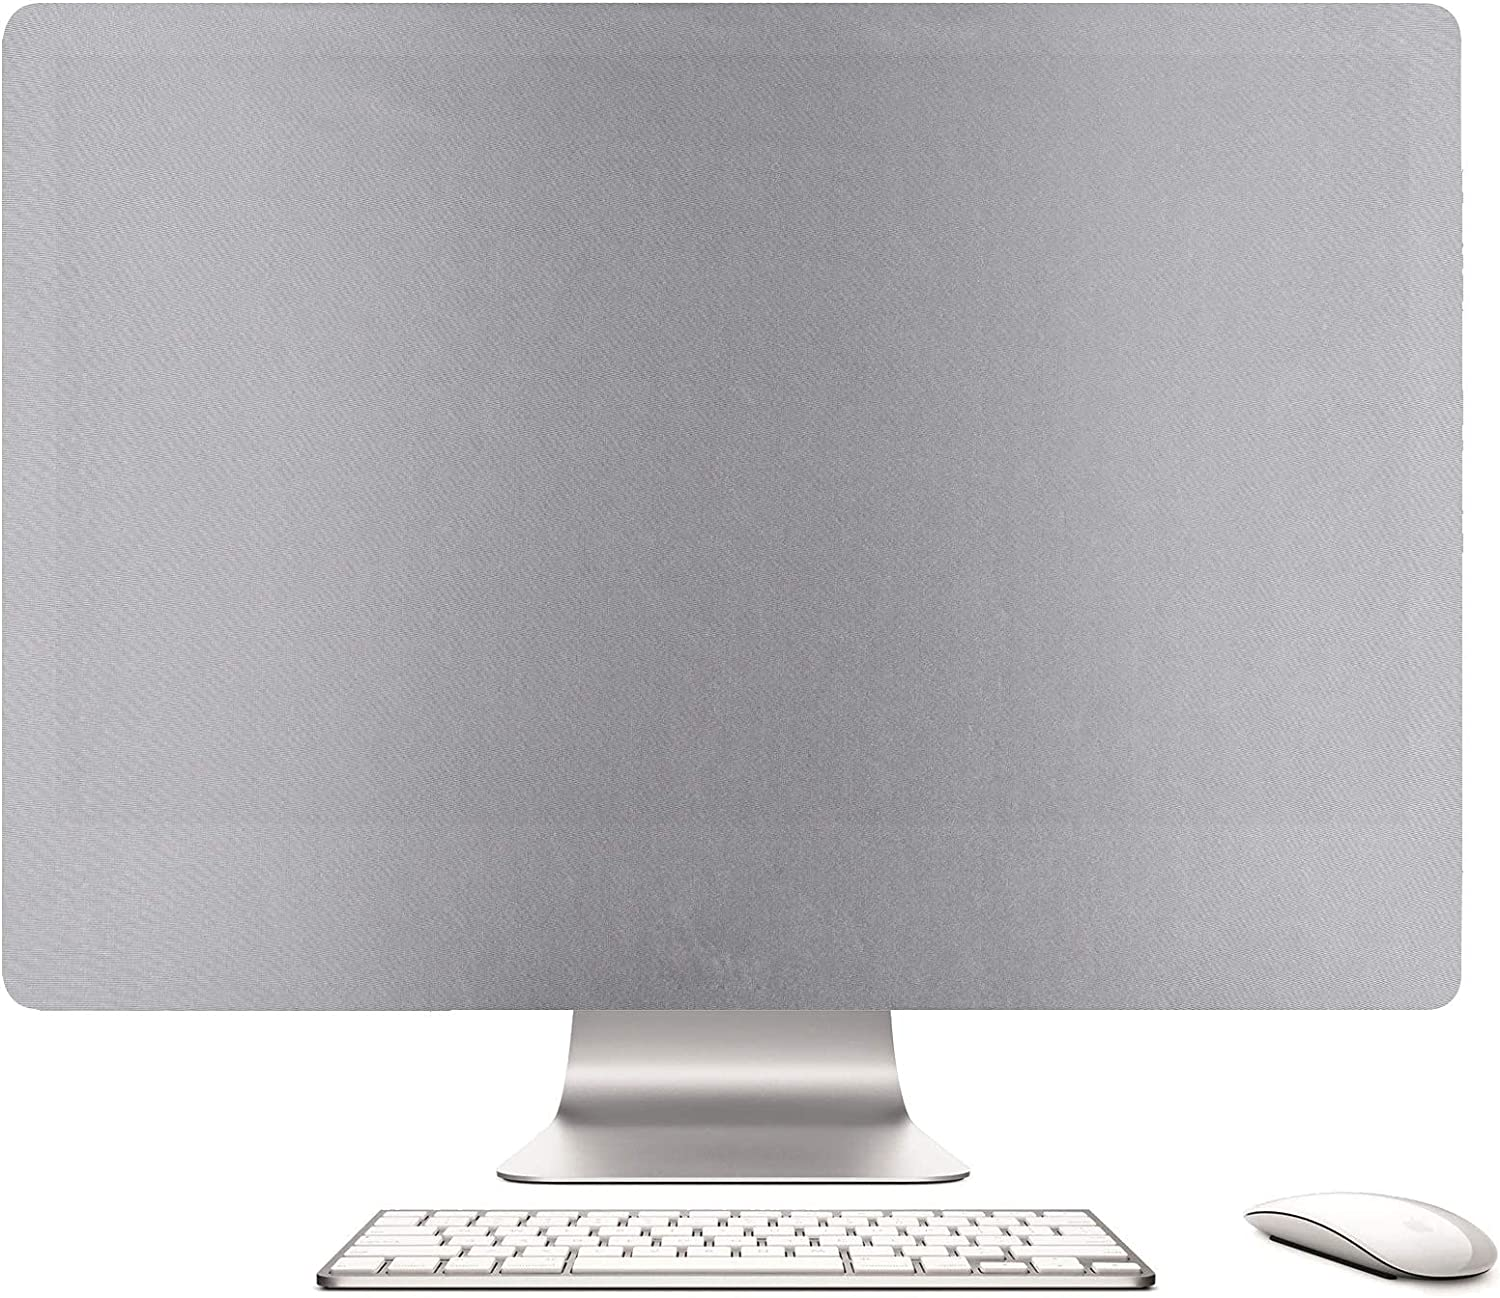 Keephic Dust Cover iMac Apple 21.5 inch Screen dust Cover Sleeve Display Monitor Protector for A1224 / A1311 / A1418 (27-inch, Silver)